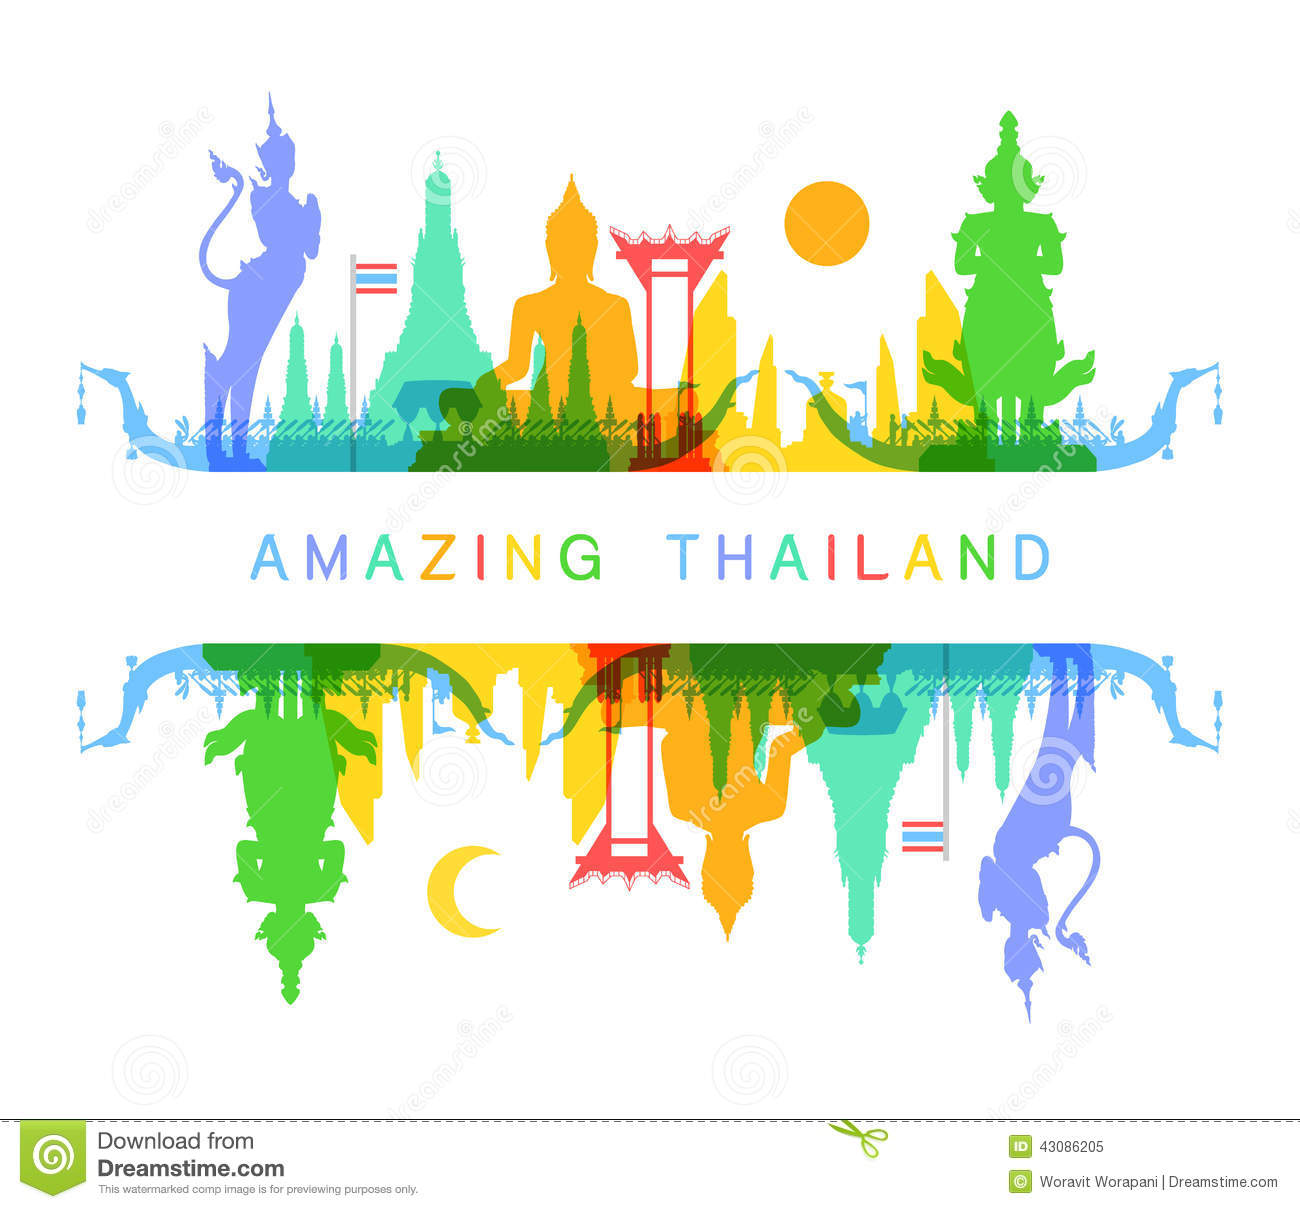 Thailand clipart #20, Download drawings